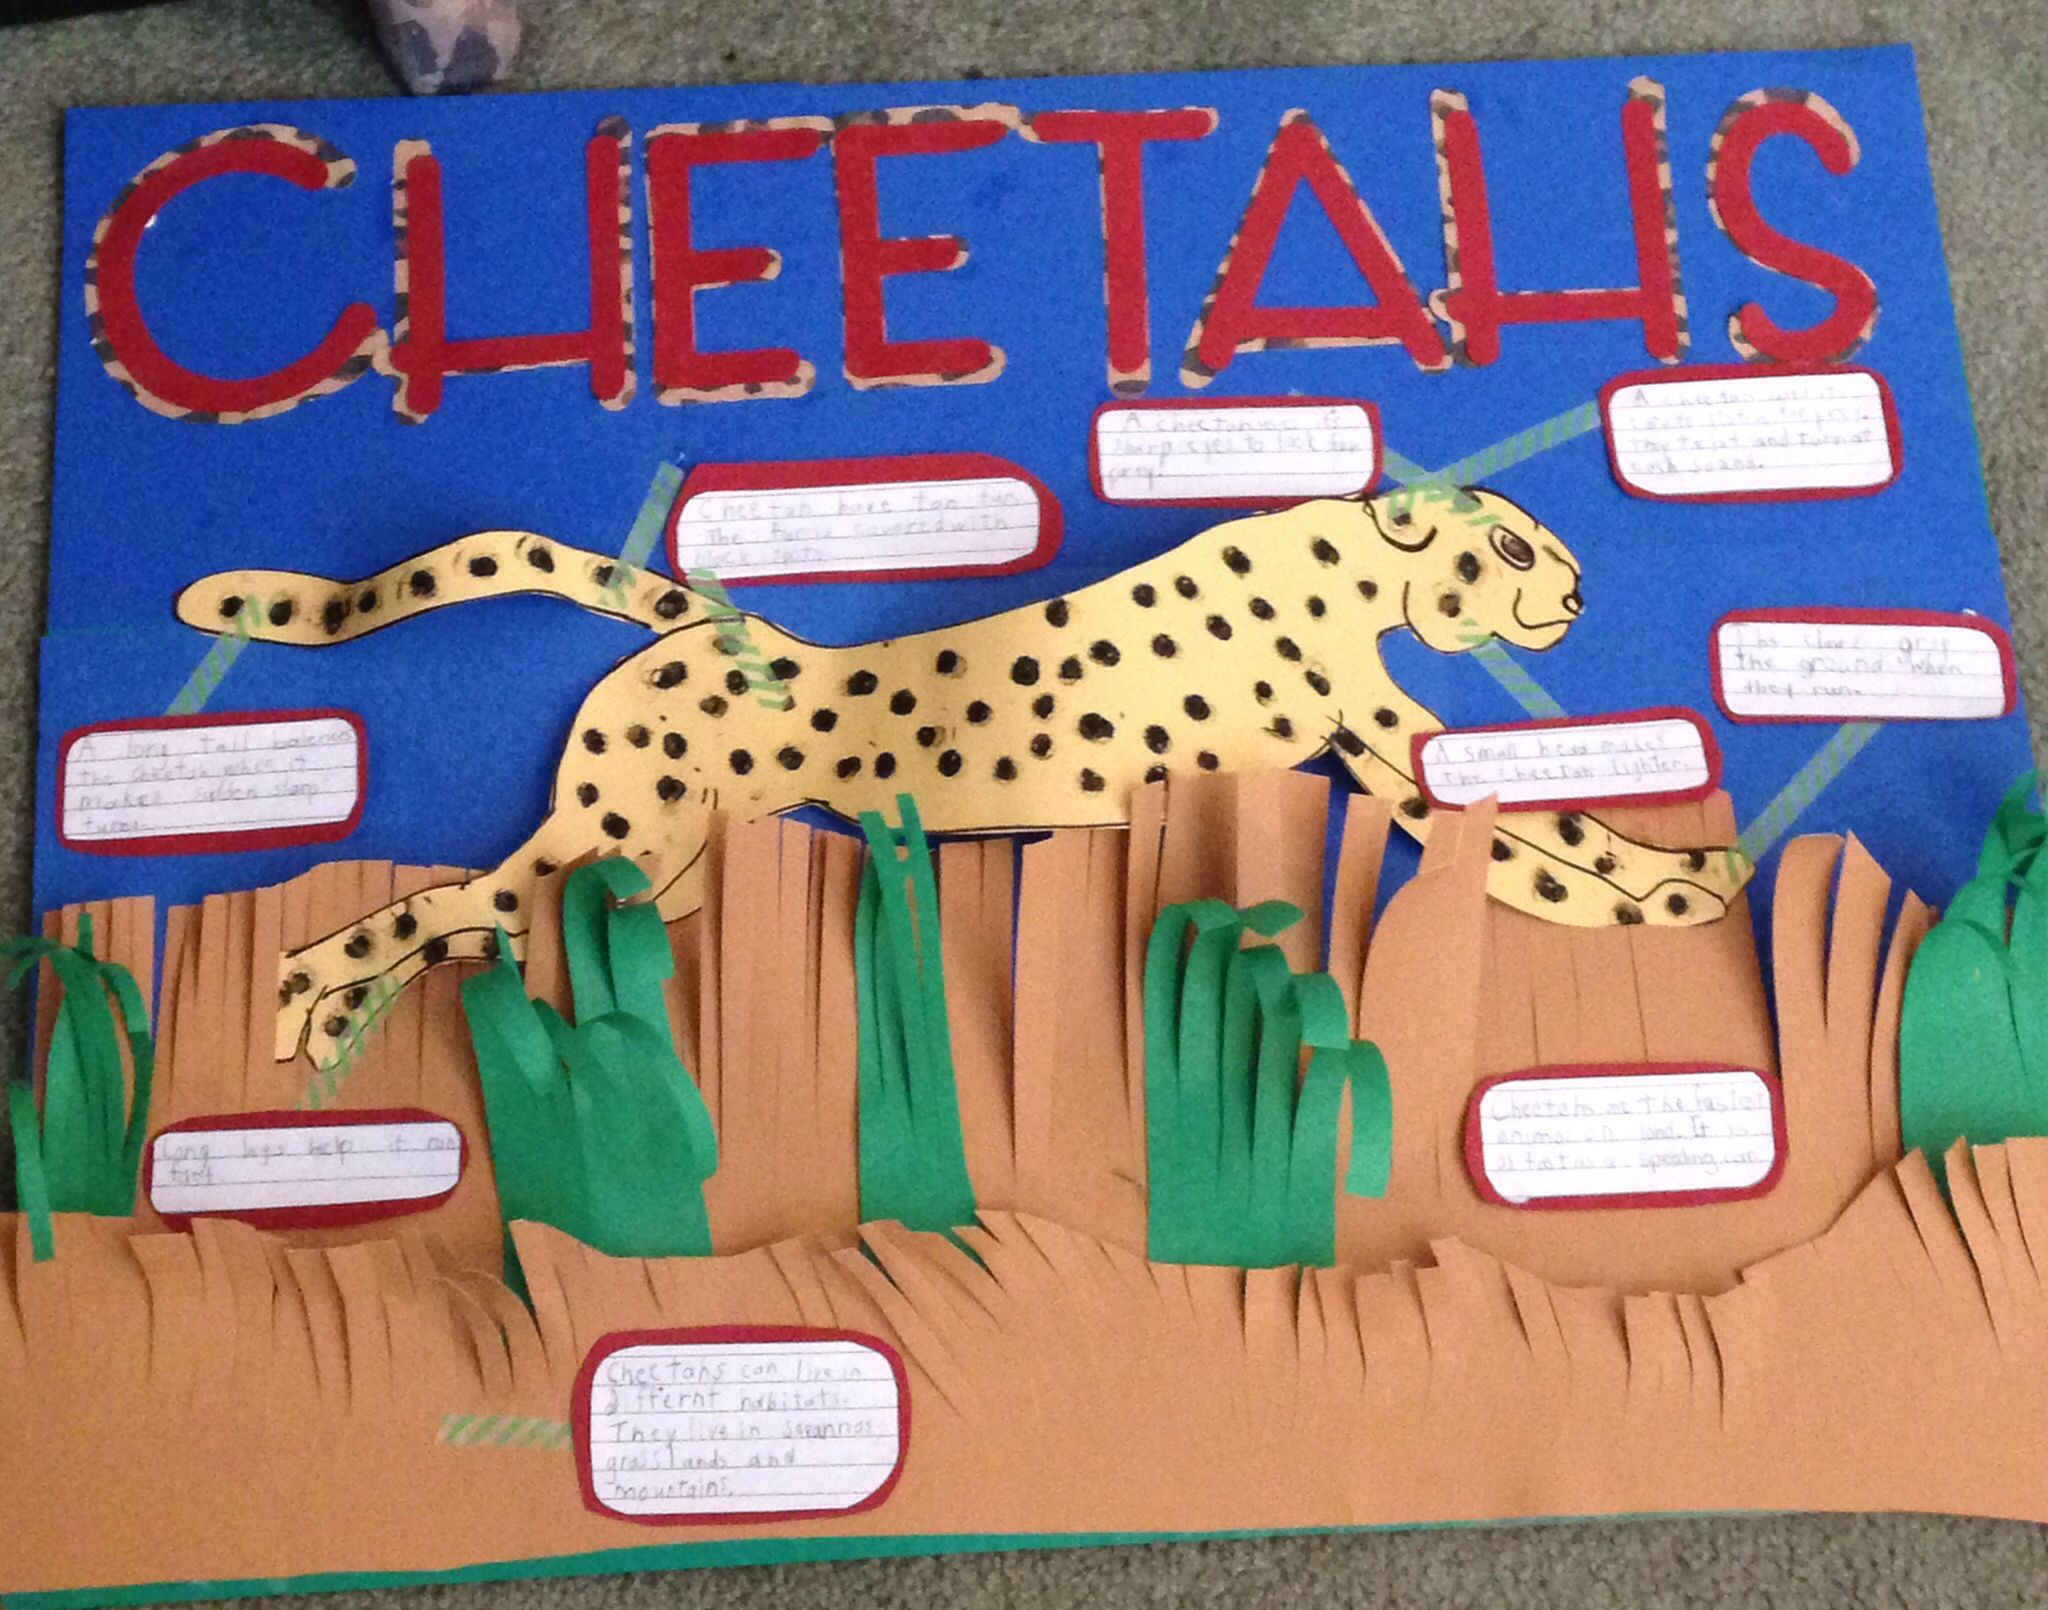 Cheetah Project Poster...